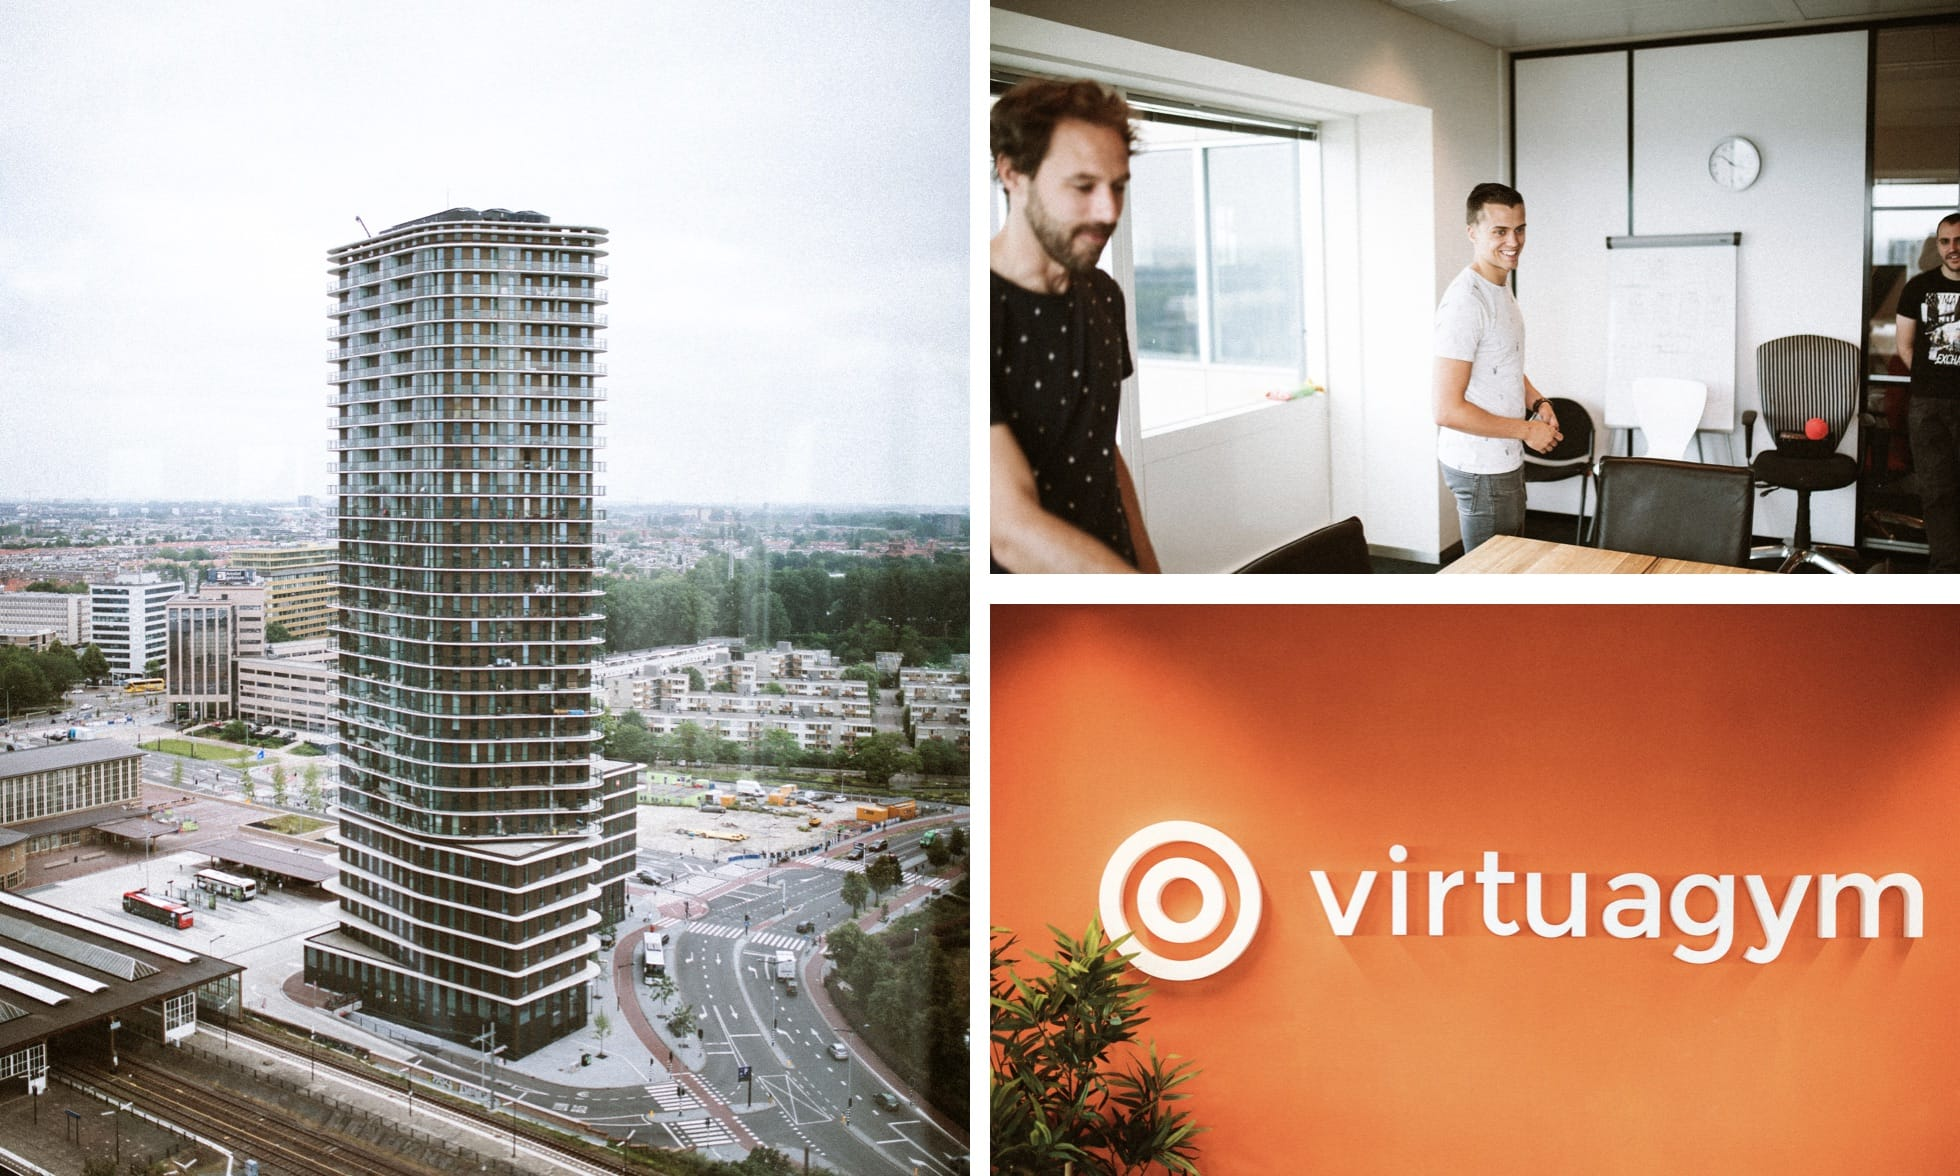 Sports and health are in Virtuagym's DNA, and that's clear if you look at their Amsterdam office.